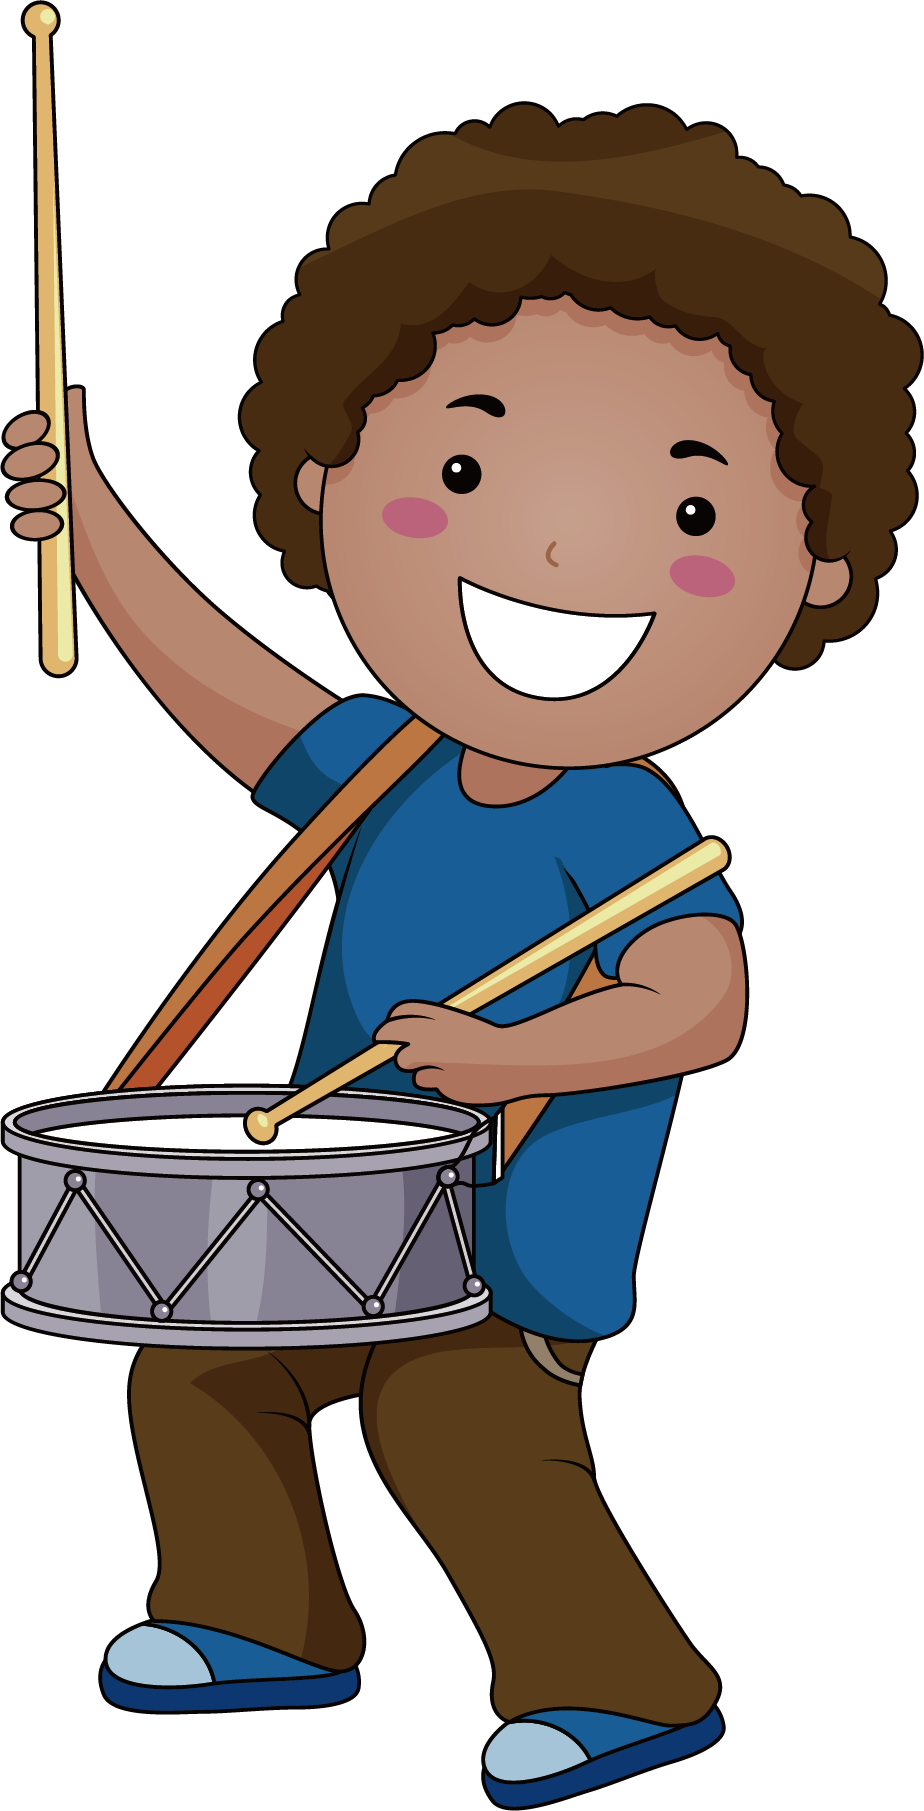 Musical instrument drawing clip. Drums clipart drum indian